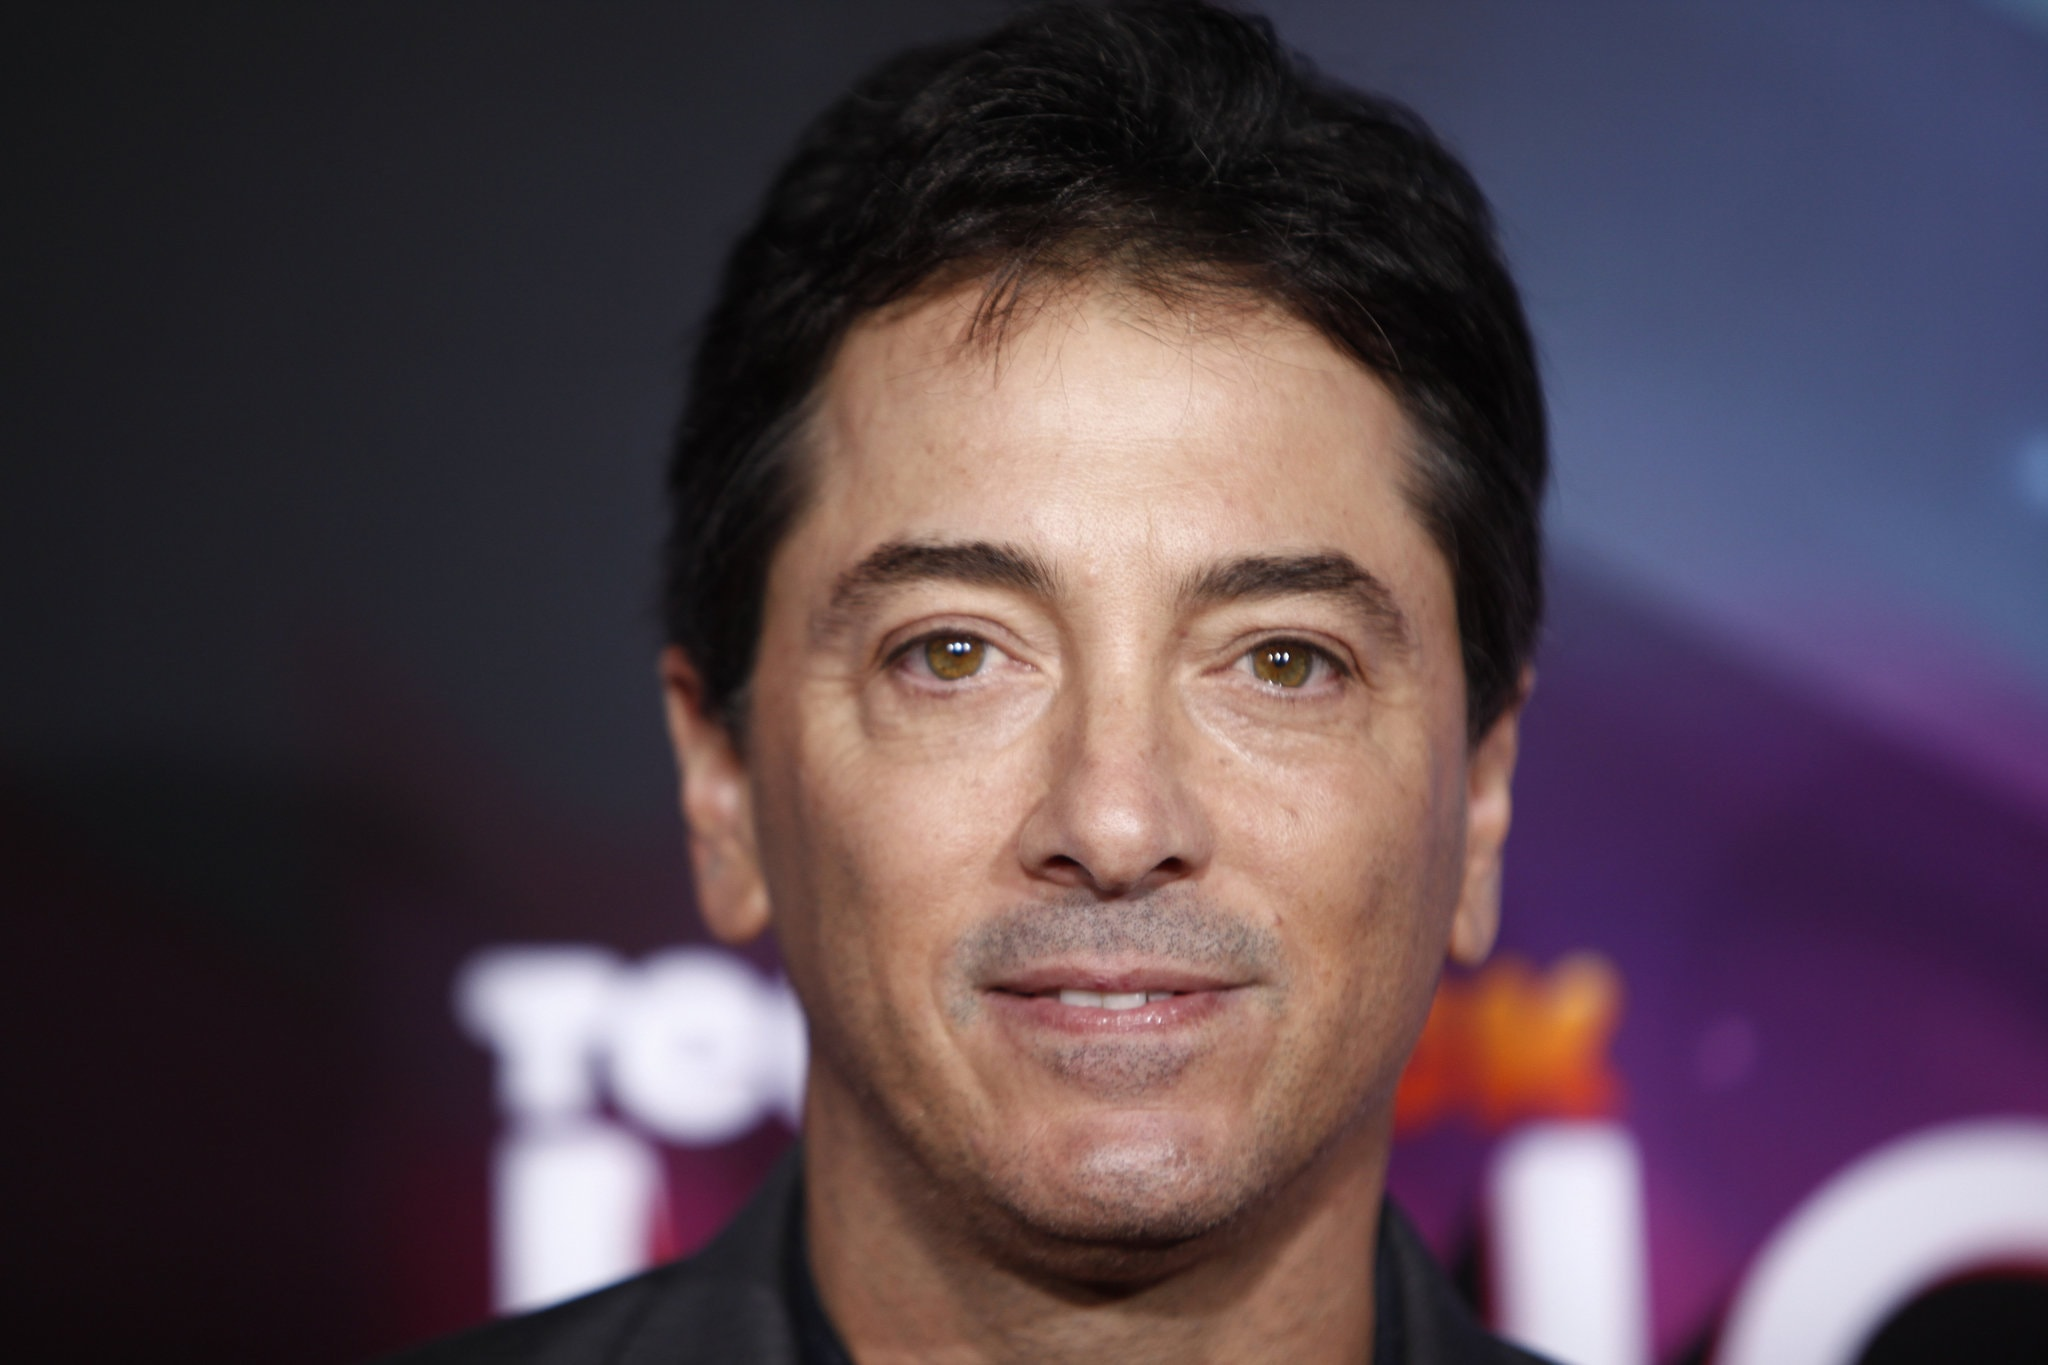 Scott Baio Wallpapers hd